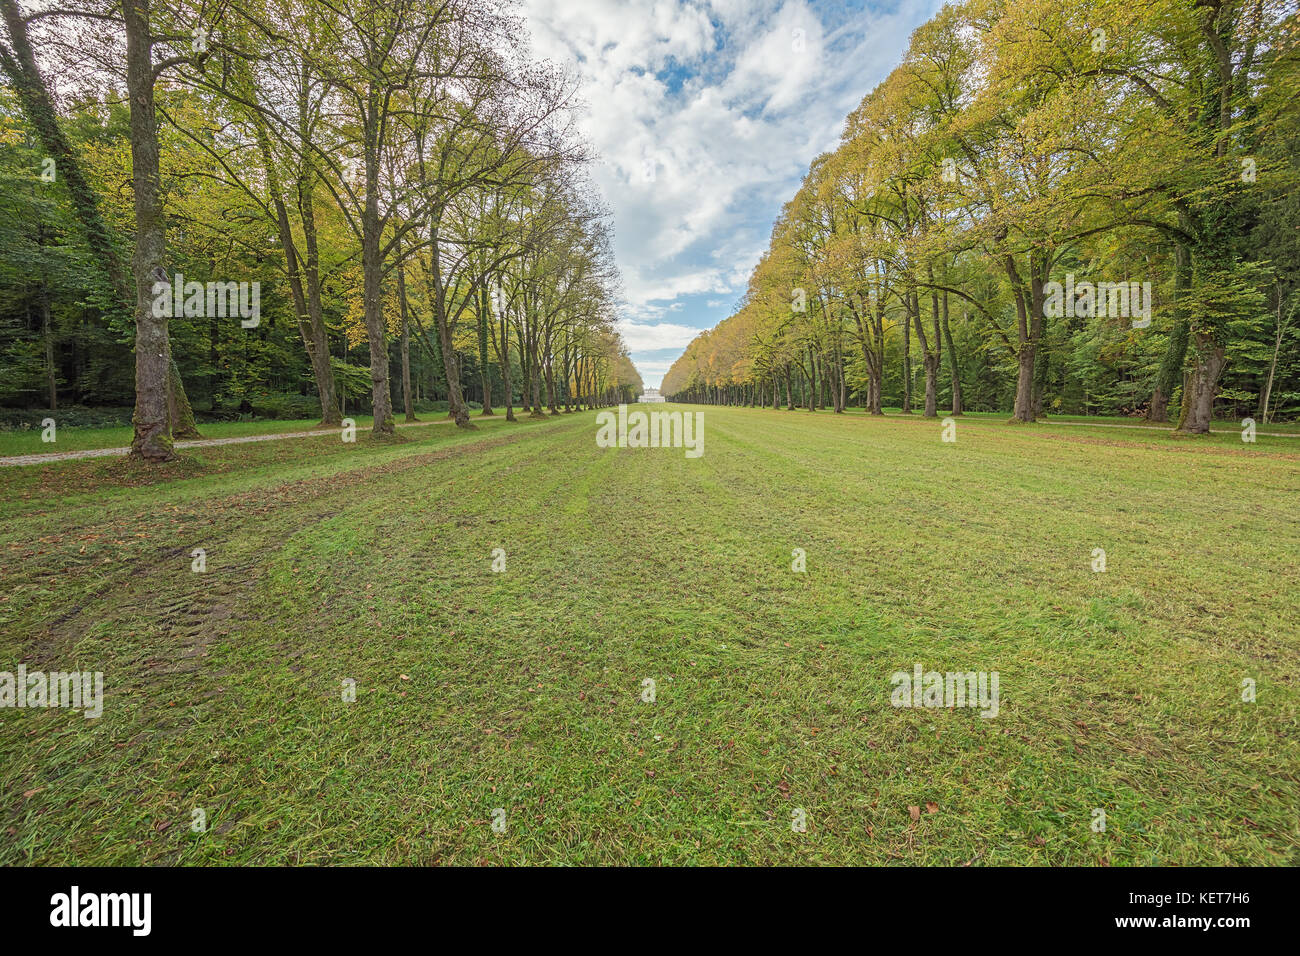 Editorial: PRIEN, HERRENINSEL, BAVARIA, GERMANY, September 27, 2017 - Distant view of the Herrenchiemsee palace - Stock Image